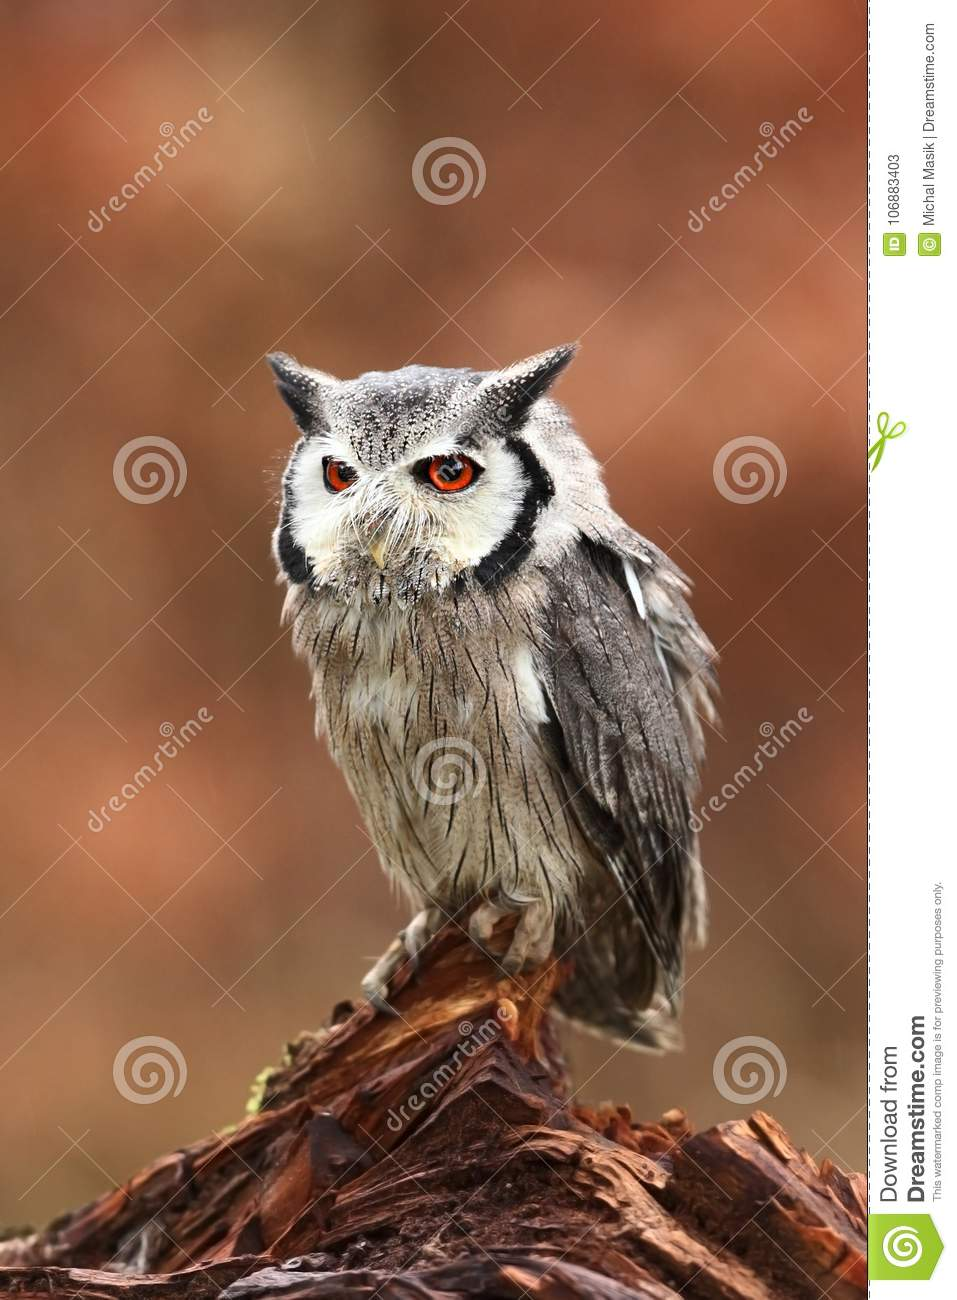 Southern White-faced Owl. Ptilopsis grants. African owl.